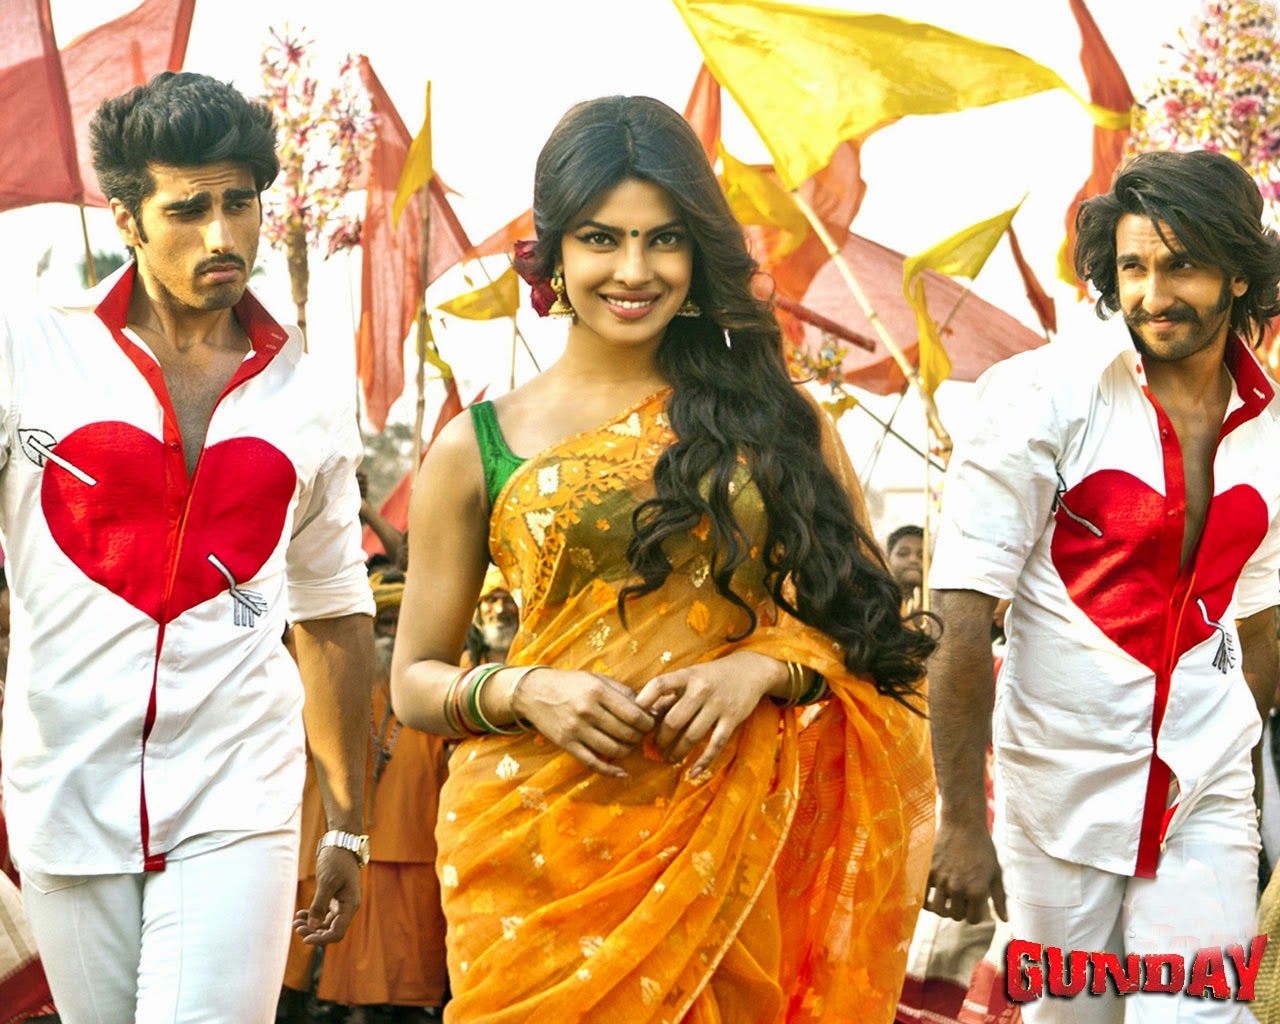 movie poster hd: gunday 2014 romantic bollywood movie hd wallpapers